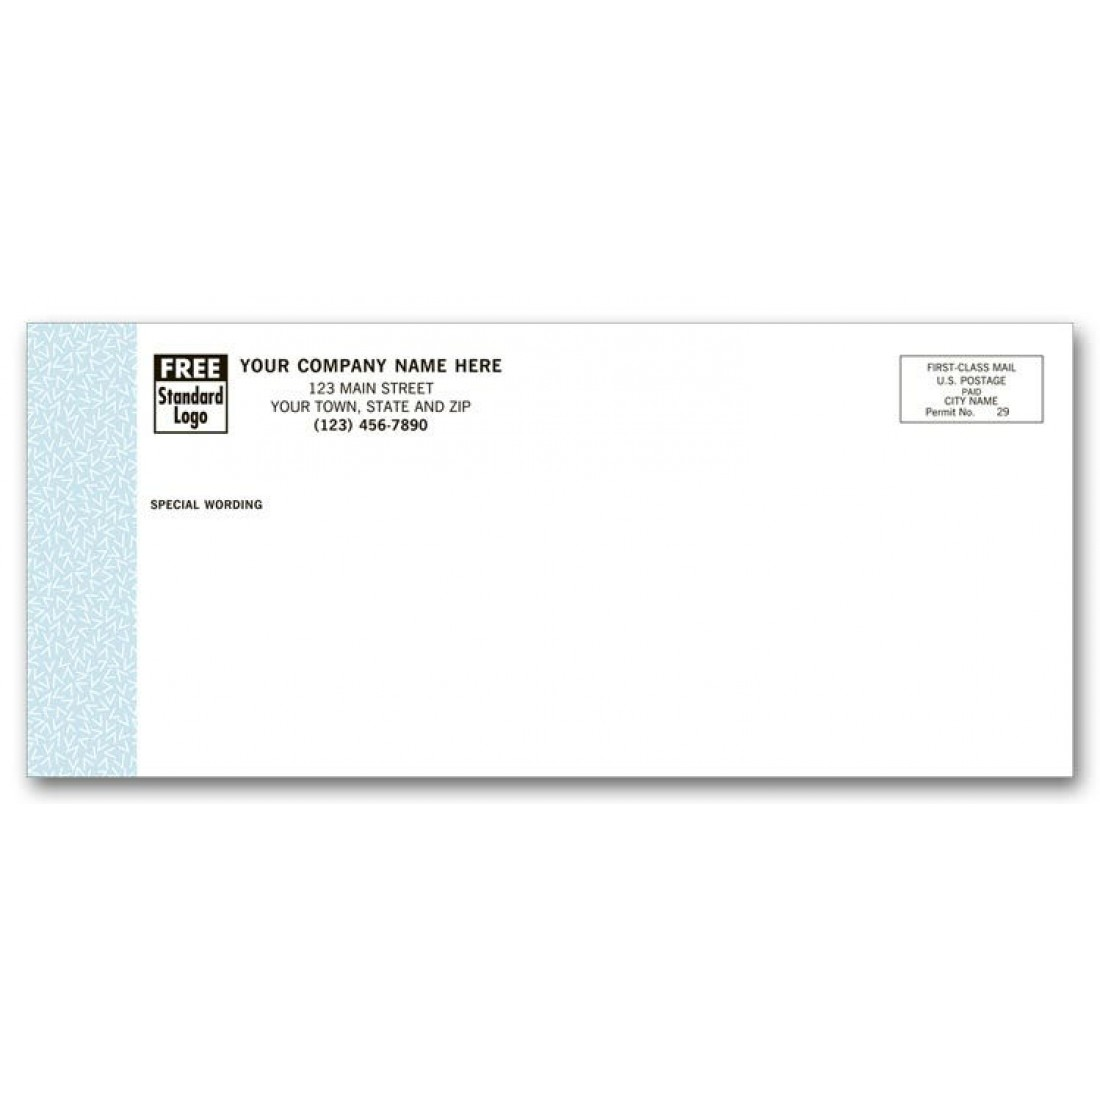 Perfect number 10 envelope size free shipping for 10 window envelope size